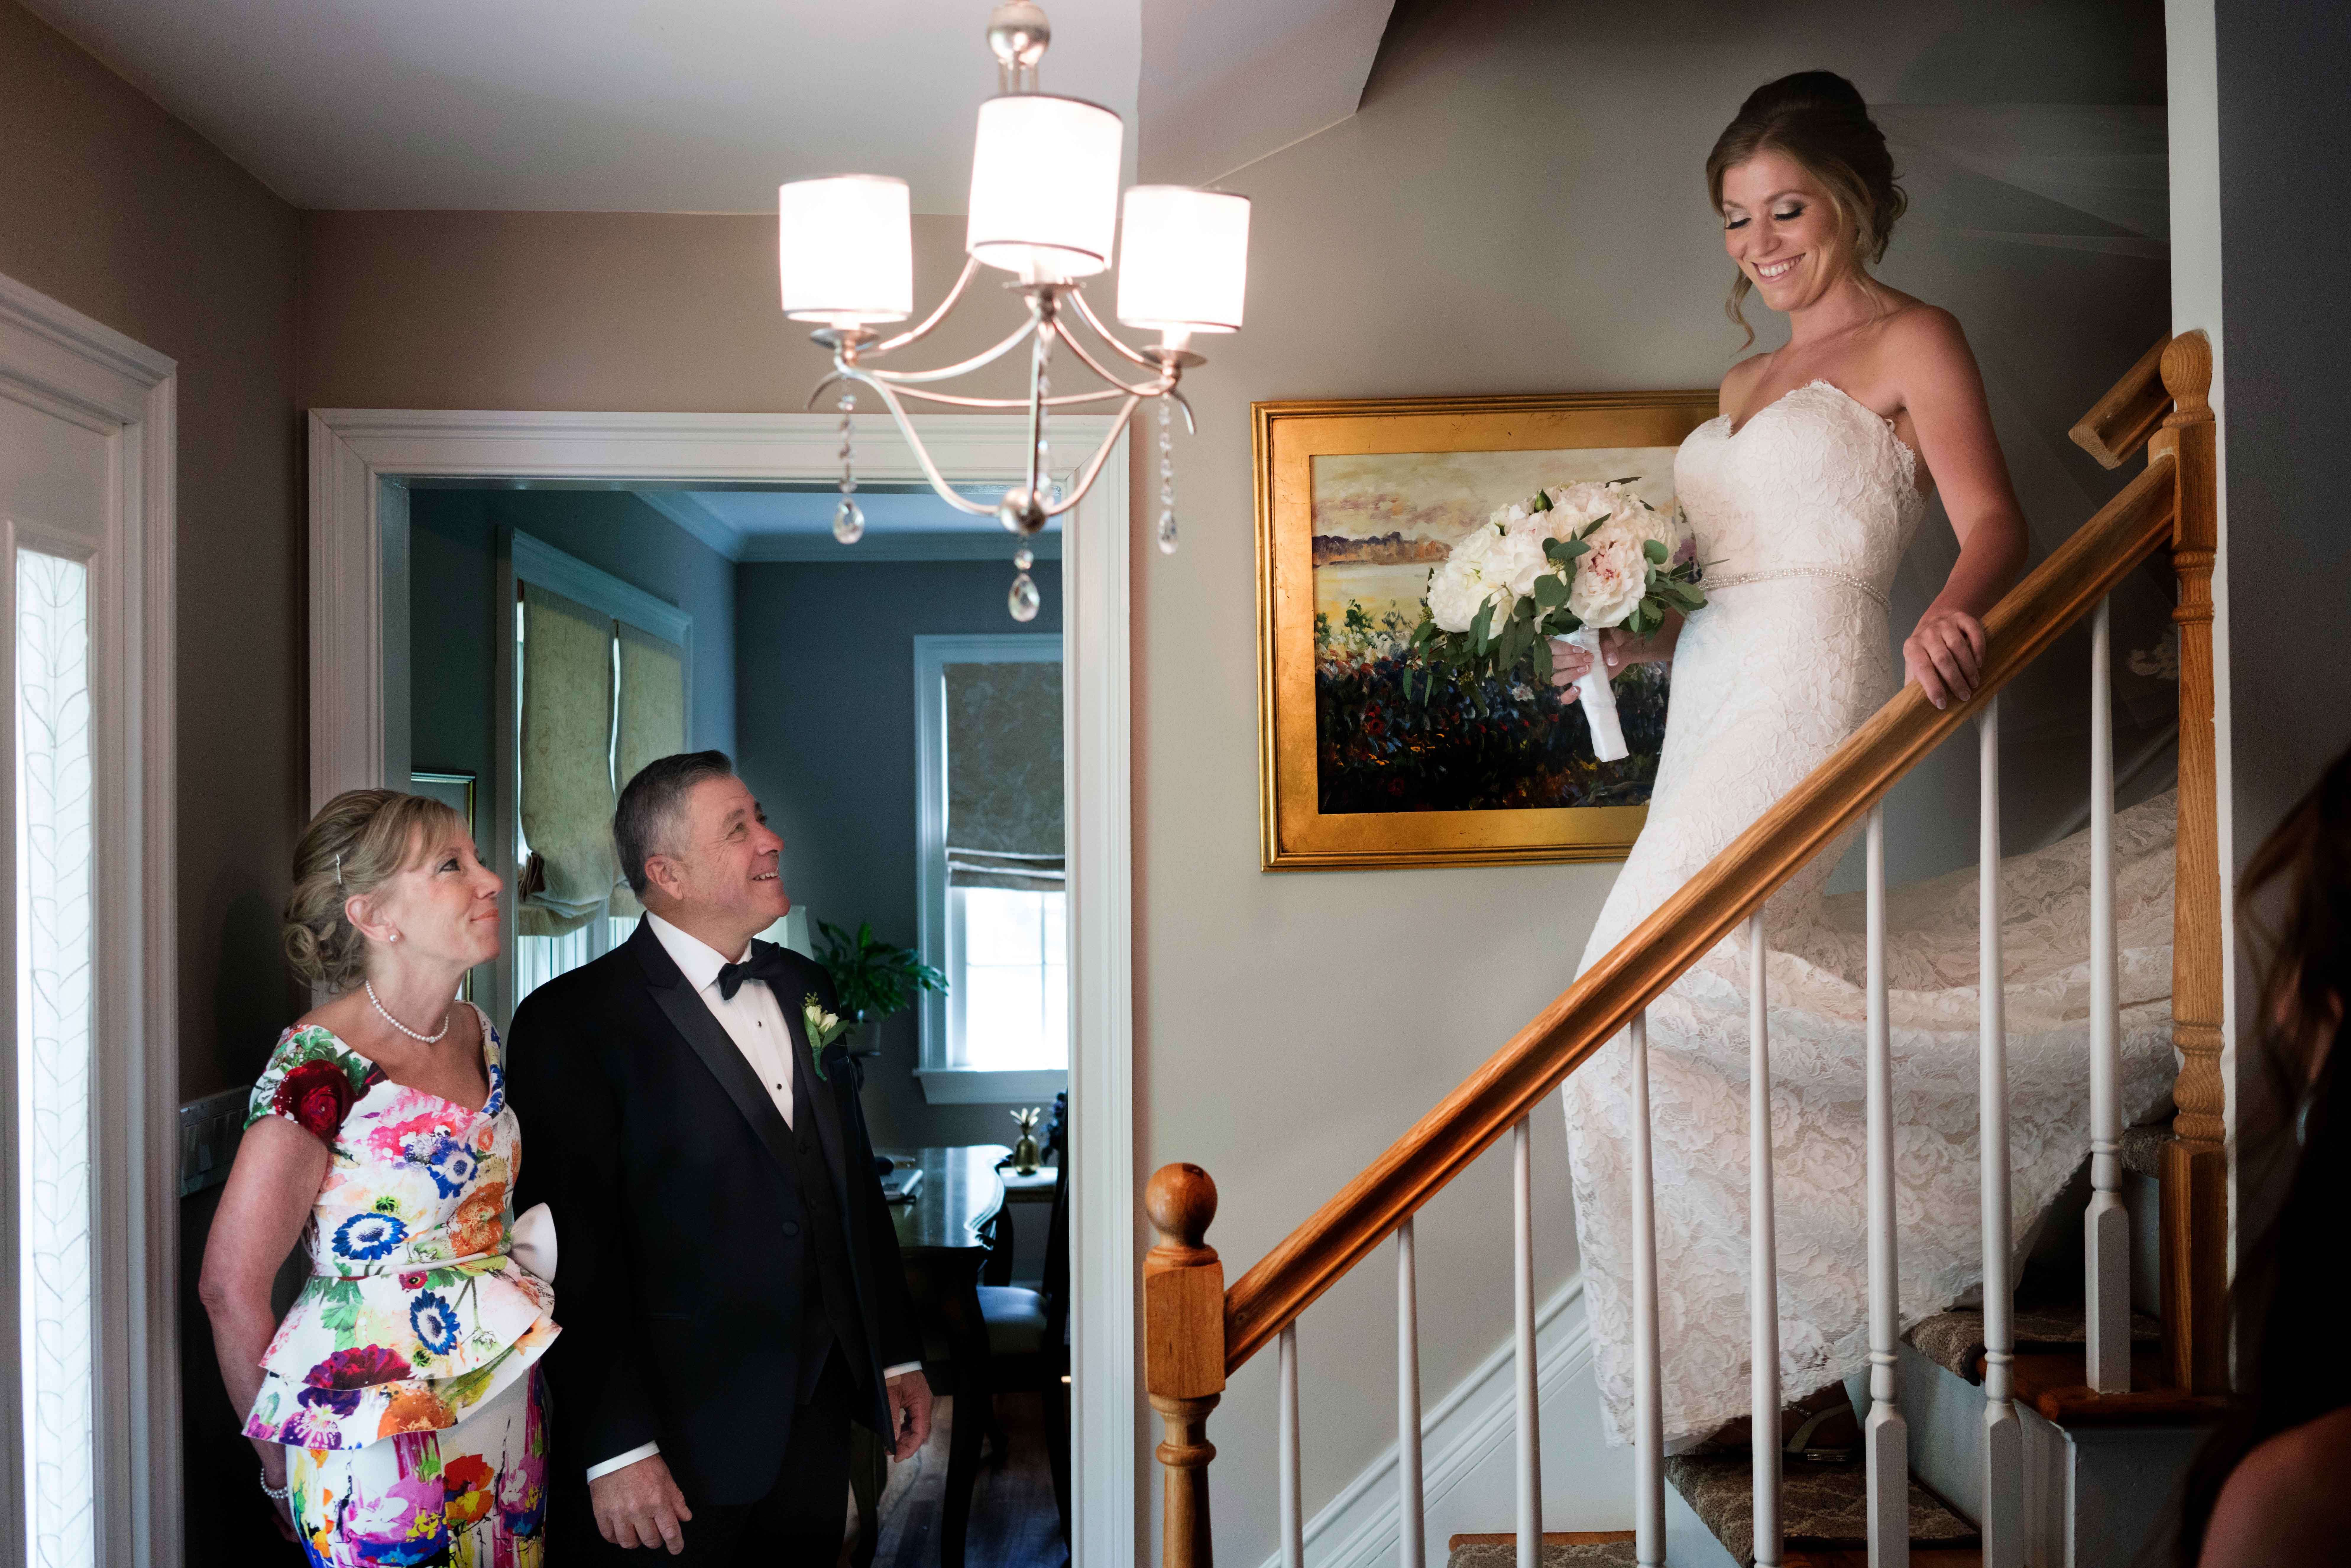 Parents first view of bride descending stairs  - photo by MD photo films